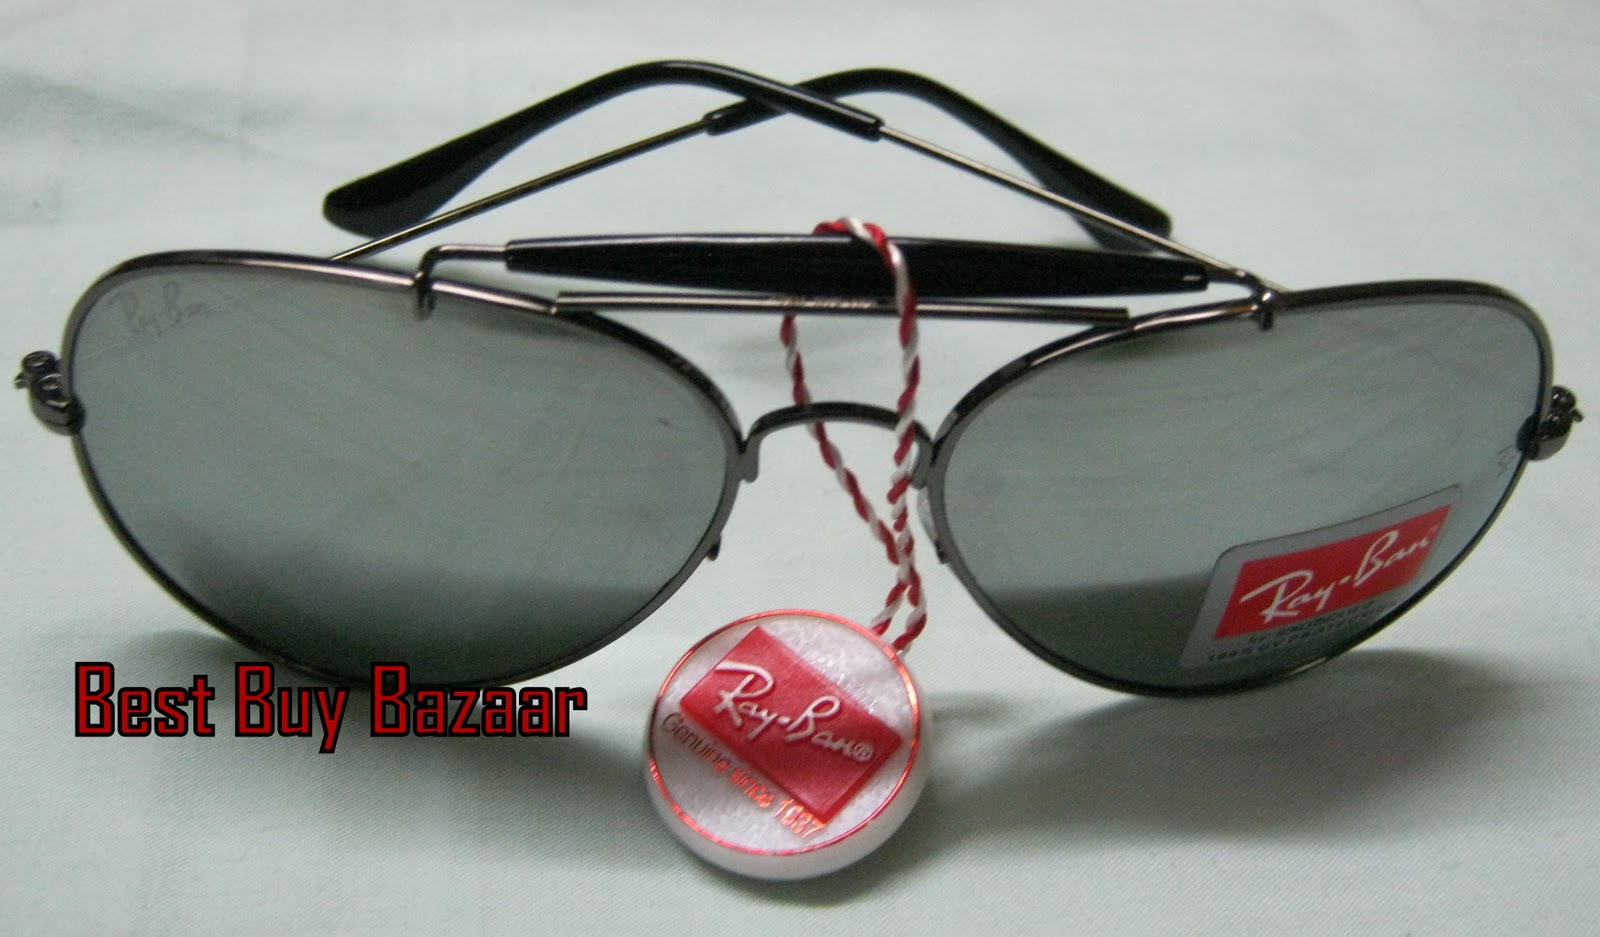 ray ban best buy bazaar